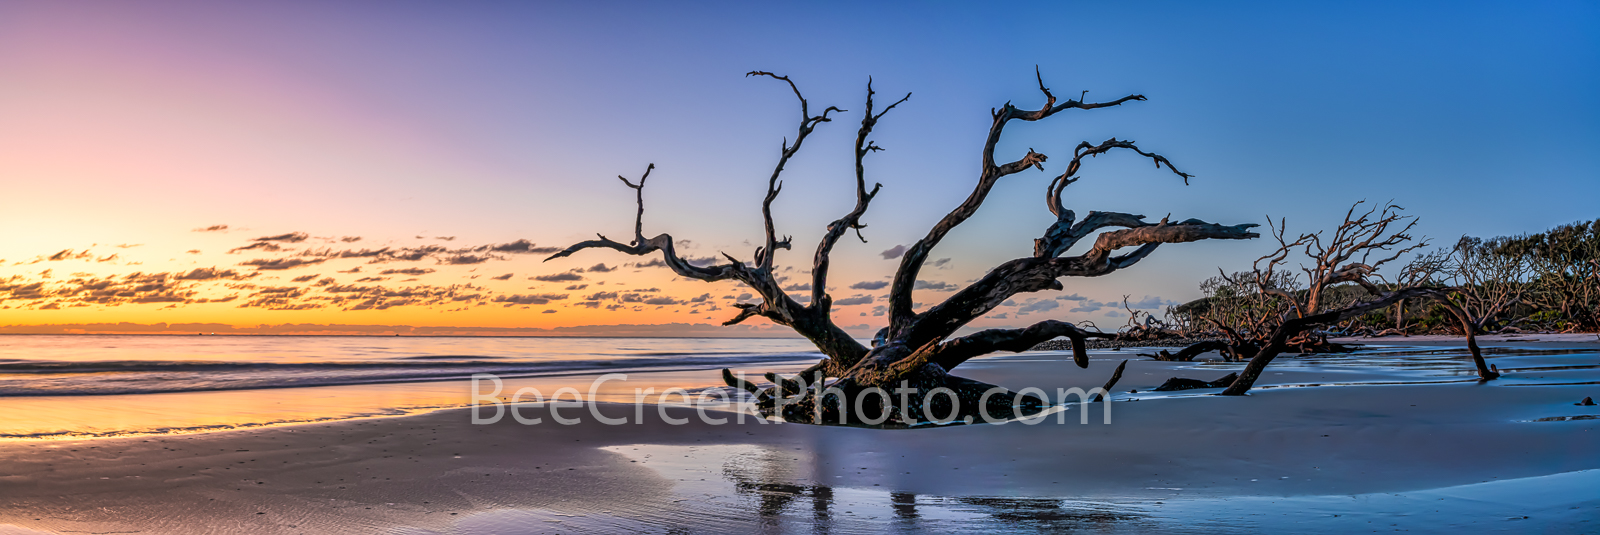 Sunrise at Driftwood Beach Pano - Jekyll Island driftwood beach with trees in the sand at sunrise as a 3 to 1 panorama. It was...